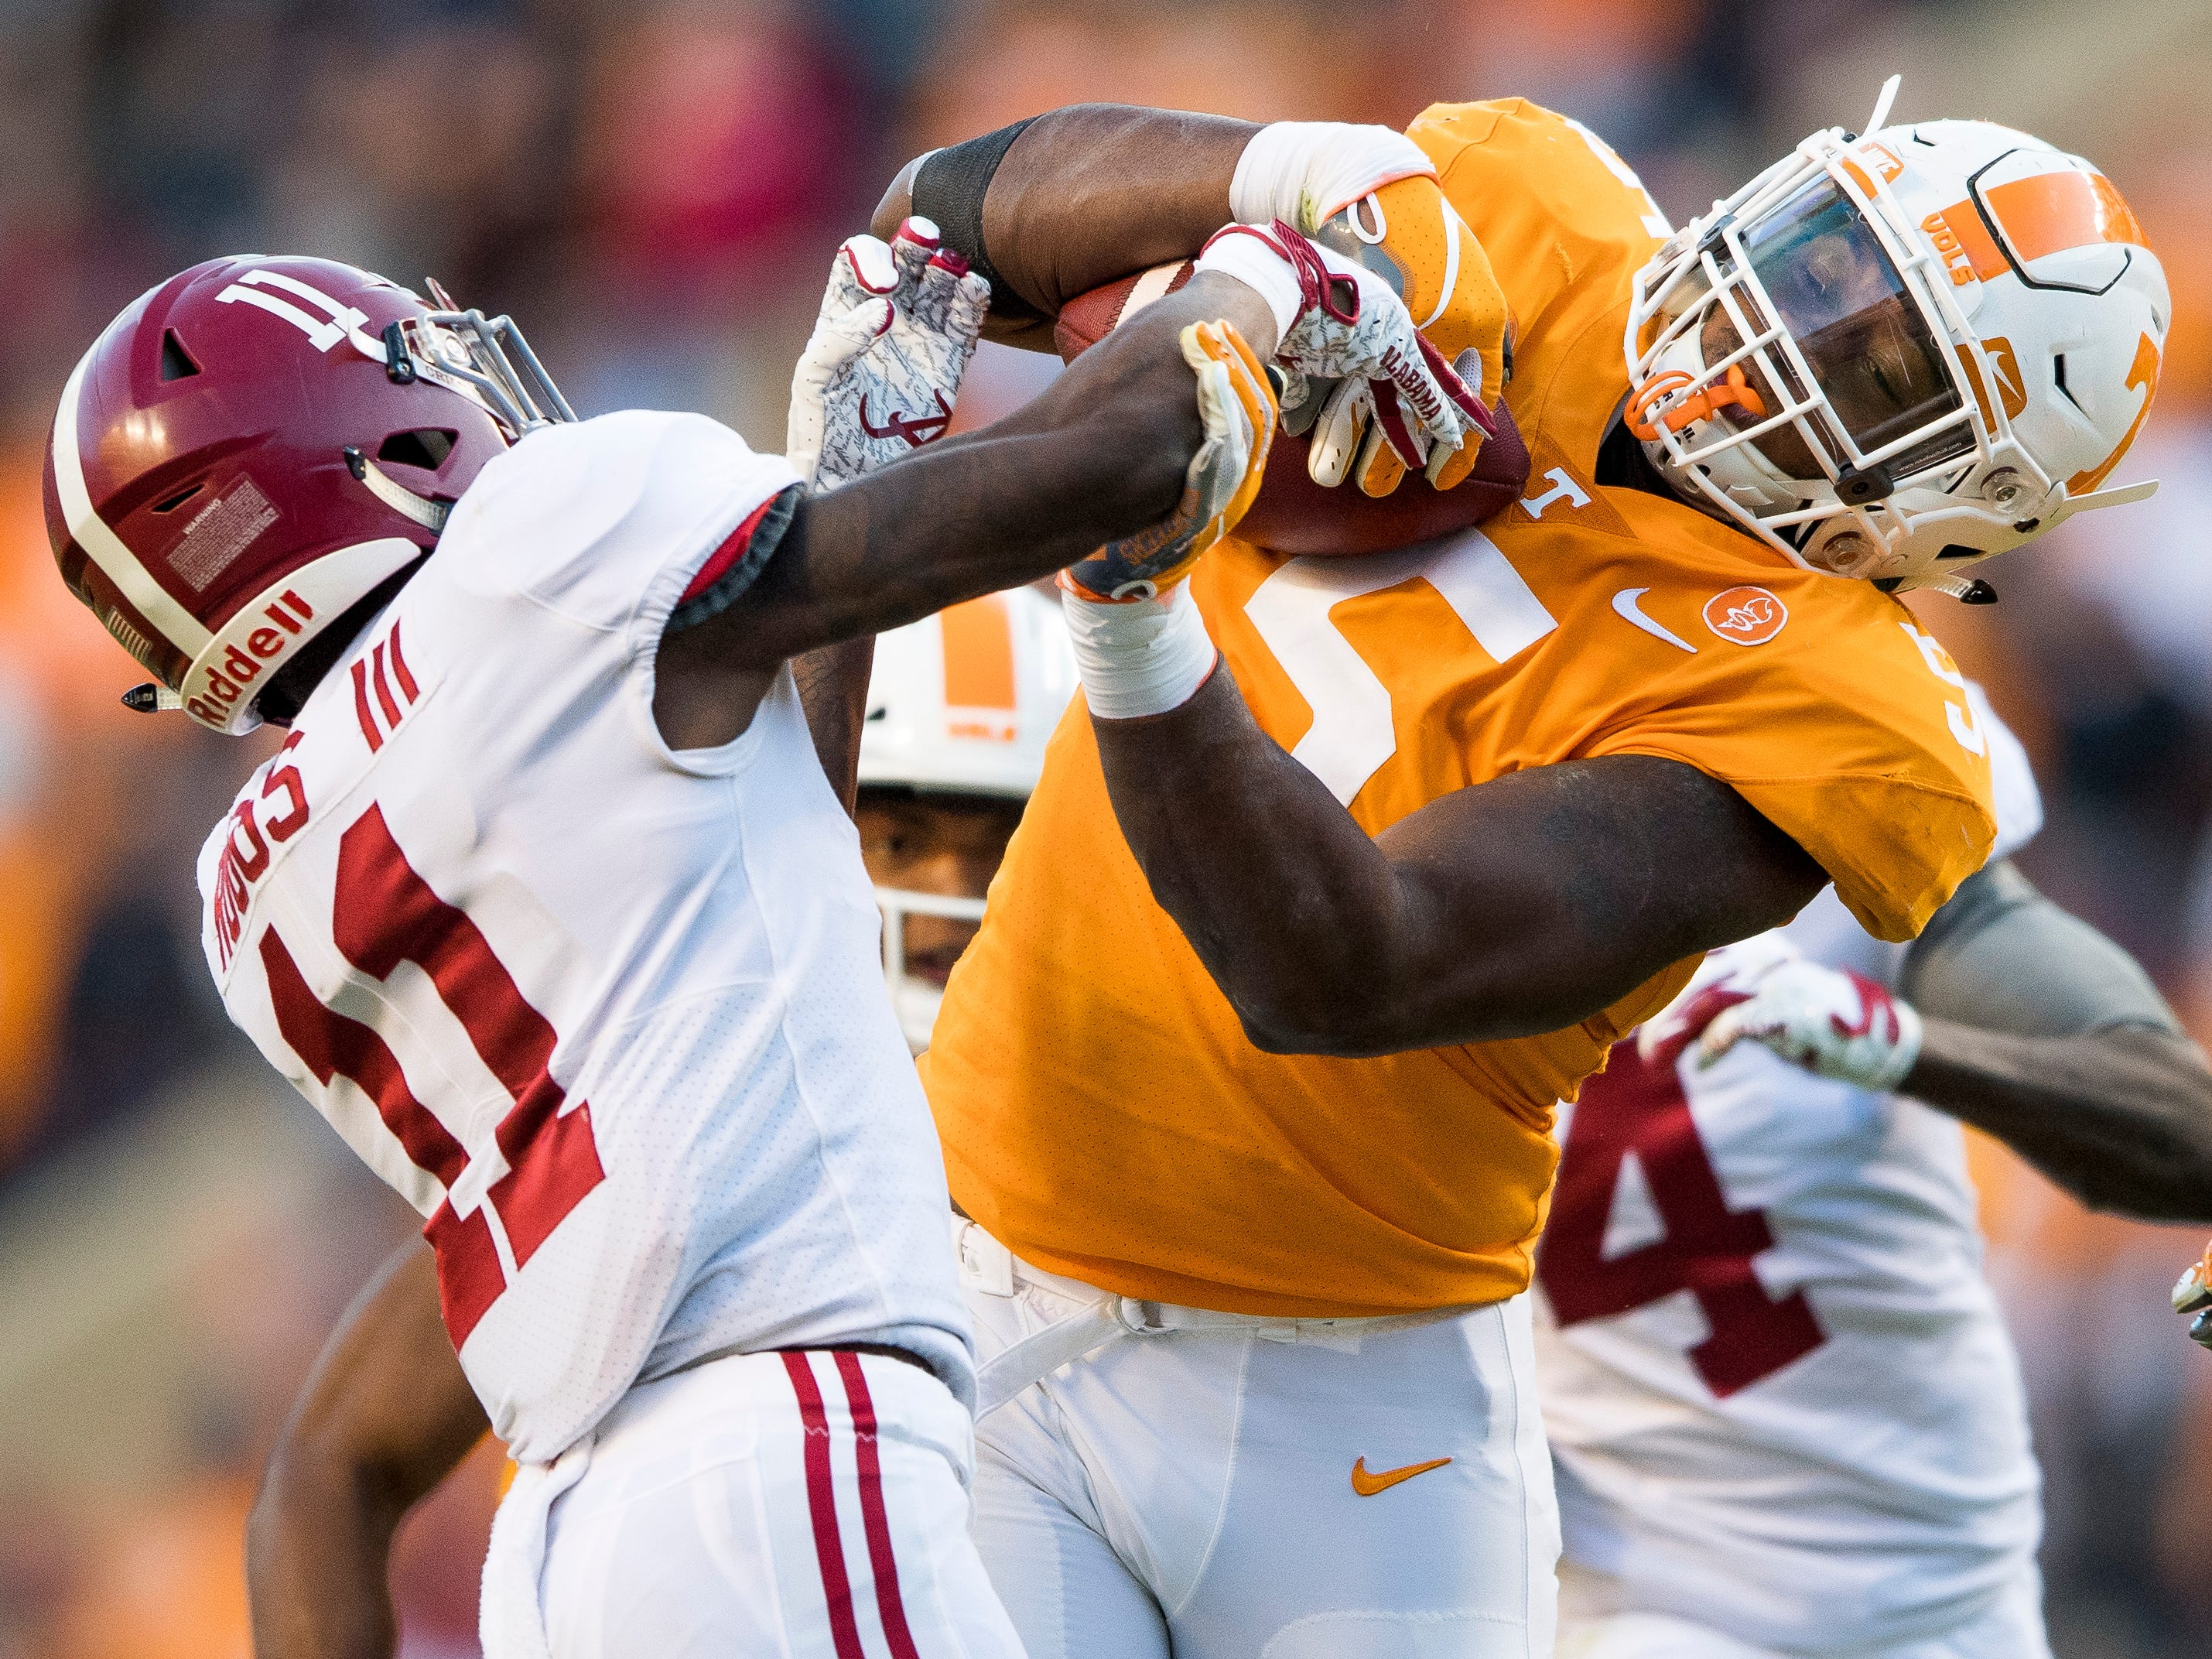 Alabama wide receiver Henry Ruggs III (11) tries to pry the ball out of the hand of Tennessee defensive lineman Kyle Phillips (5) as Phillips returns an interception in for a touchdown during the Tennessee Volunteers' game against Alabama in Neyland Stadium on Saturday, October 20, 2018.